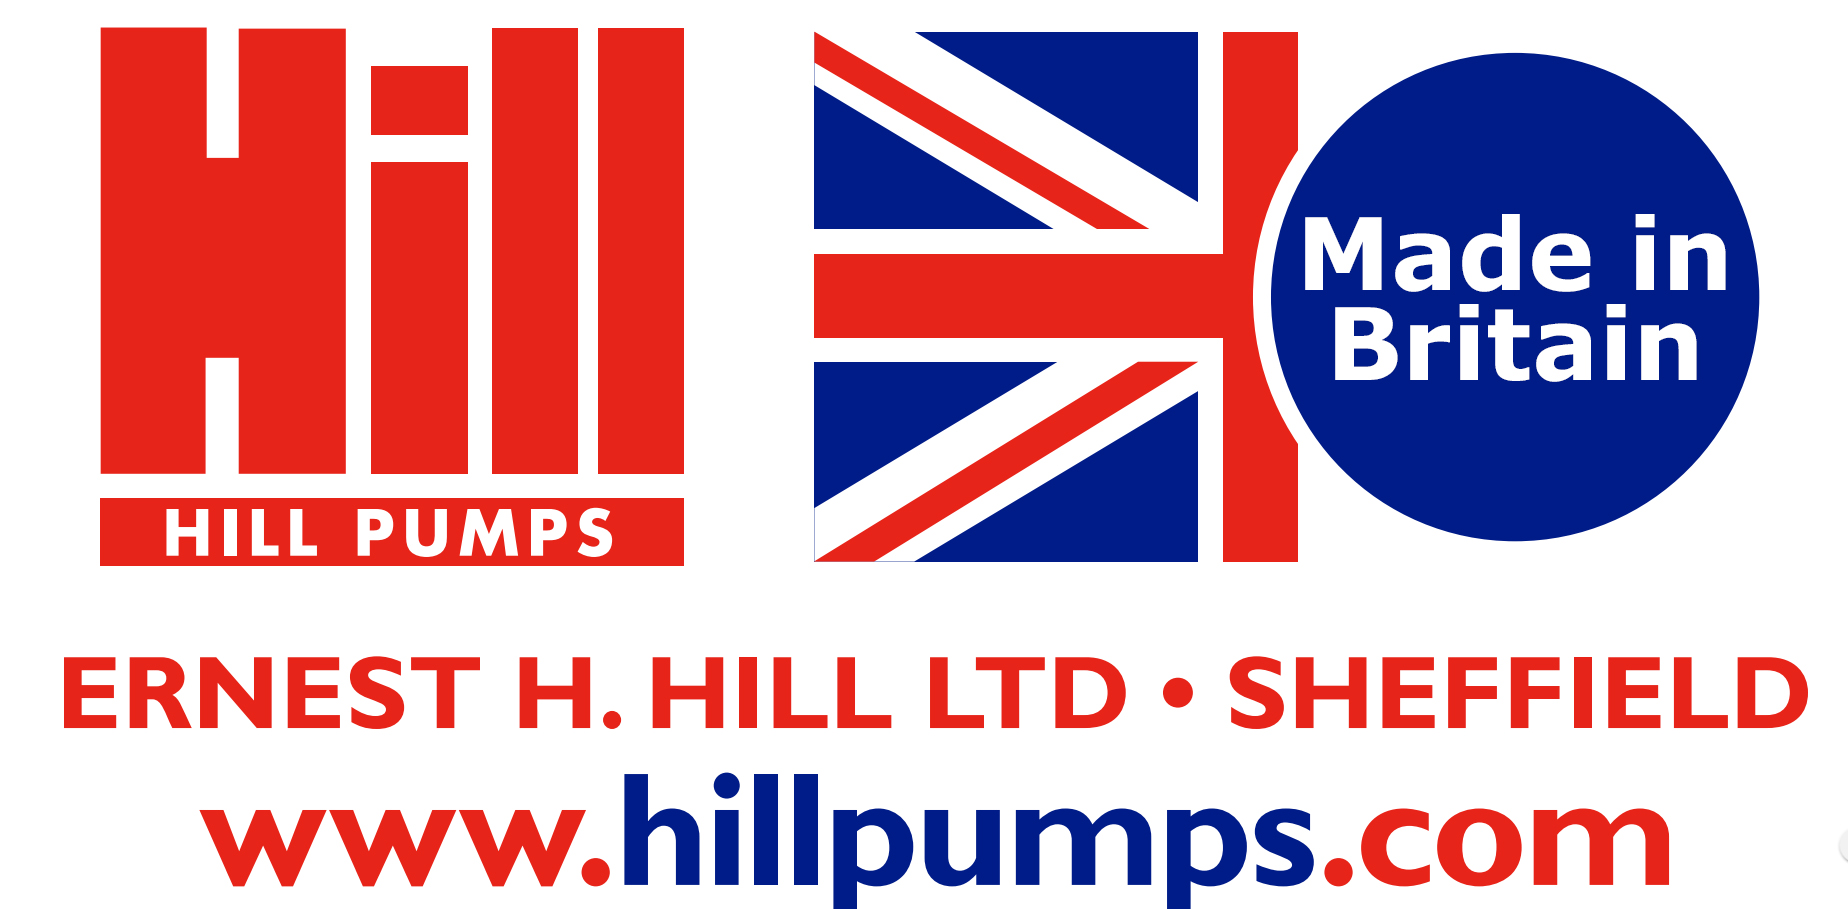 HILL PUMPS-1